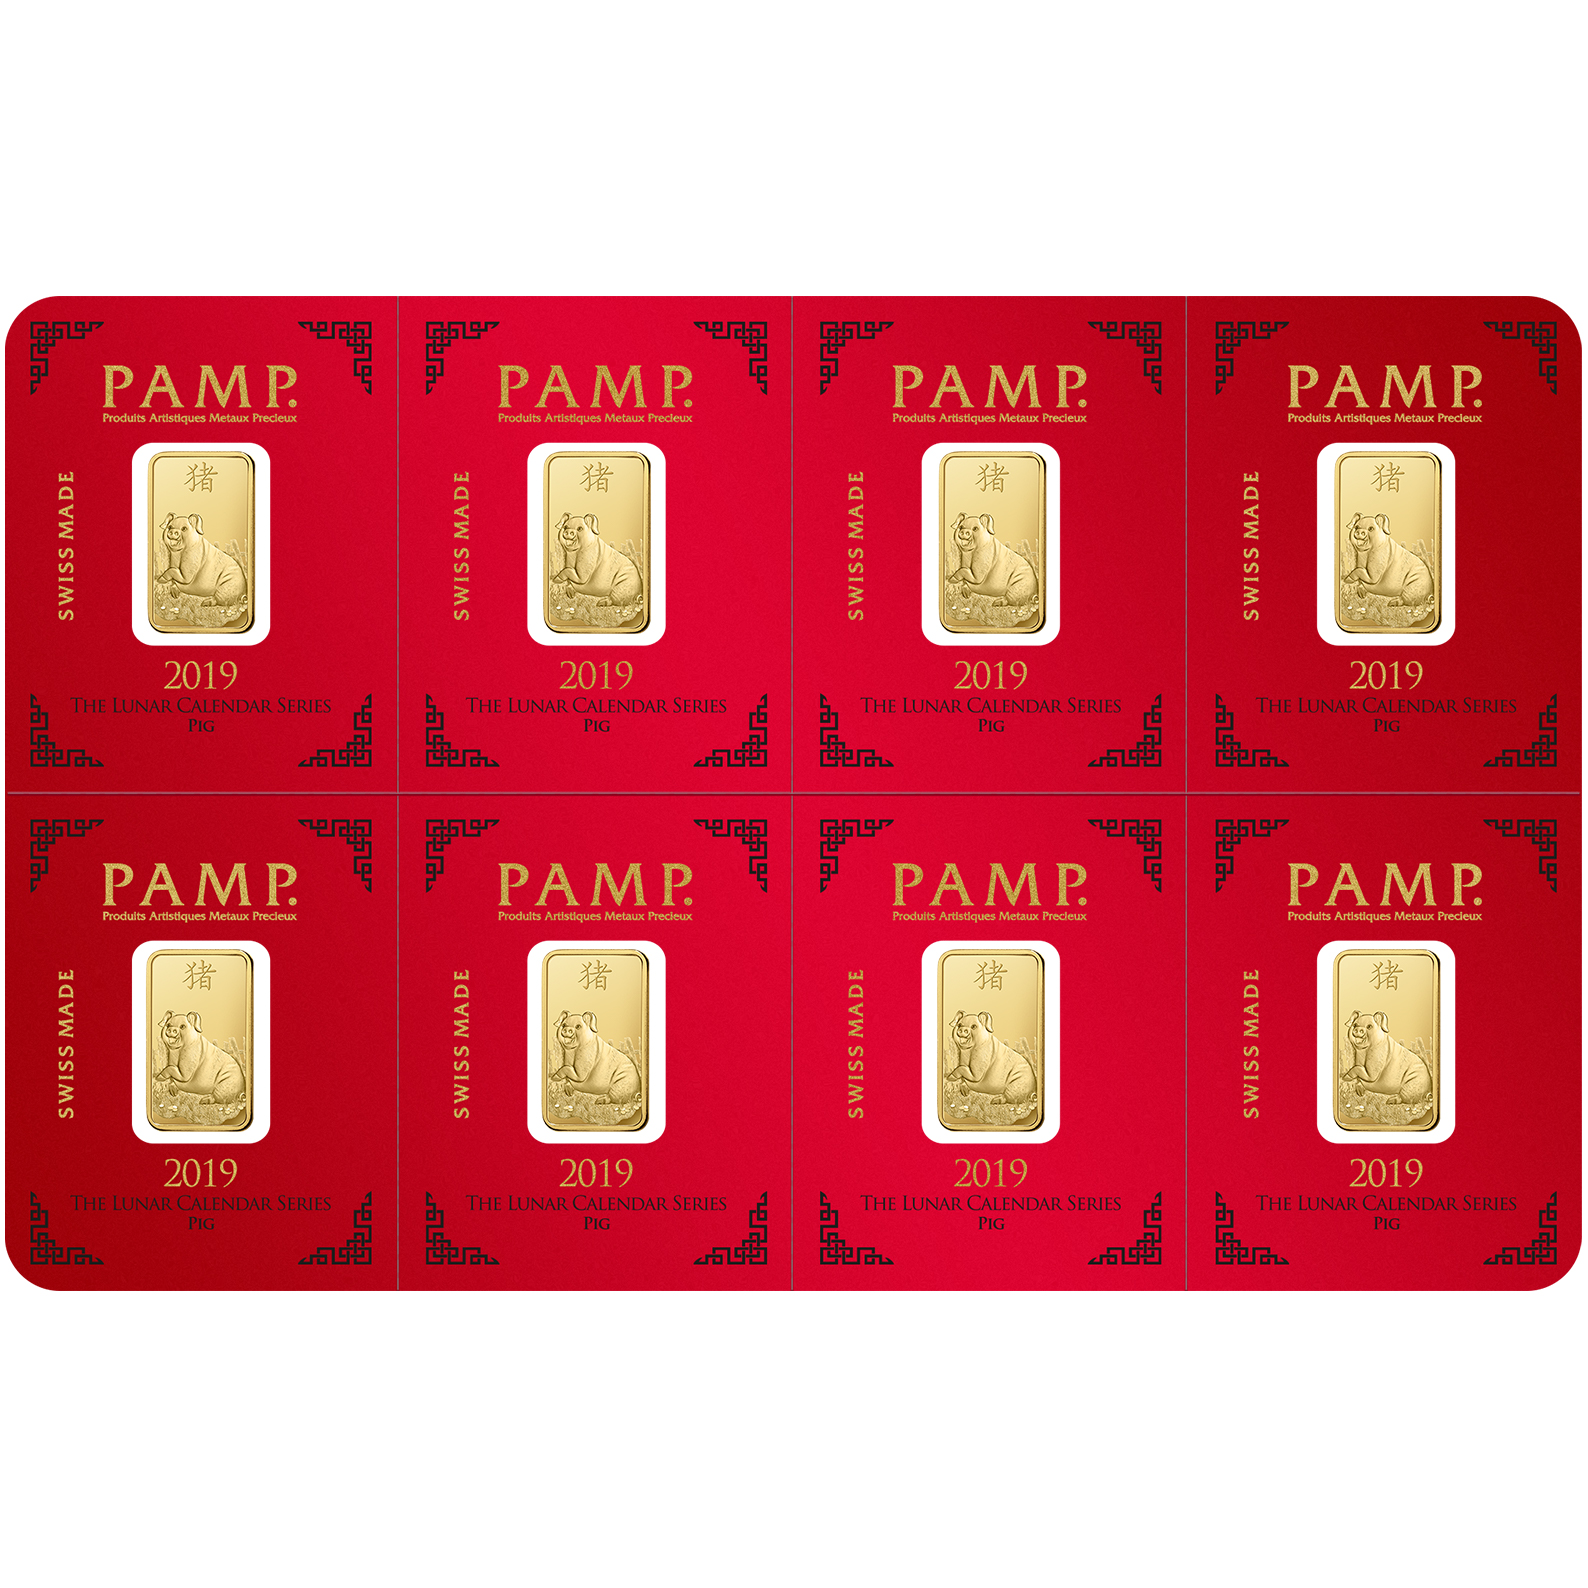 8x1 gram multigram Gold Bar - PAMP Suisse Lunar Pig